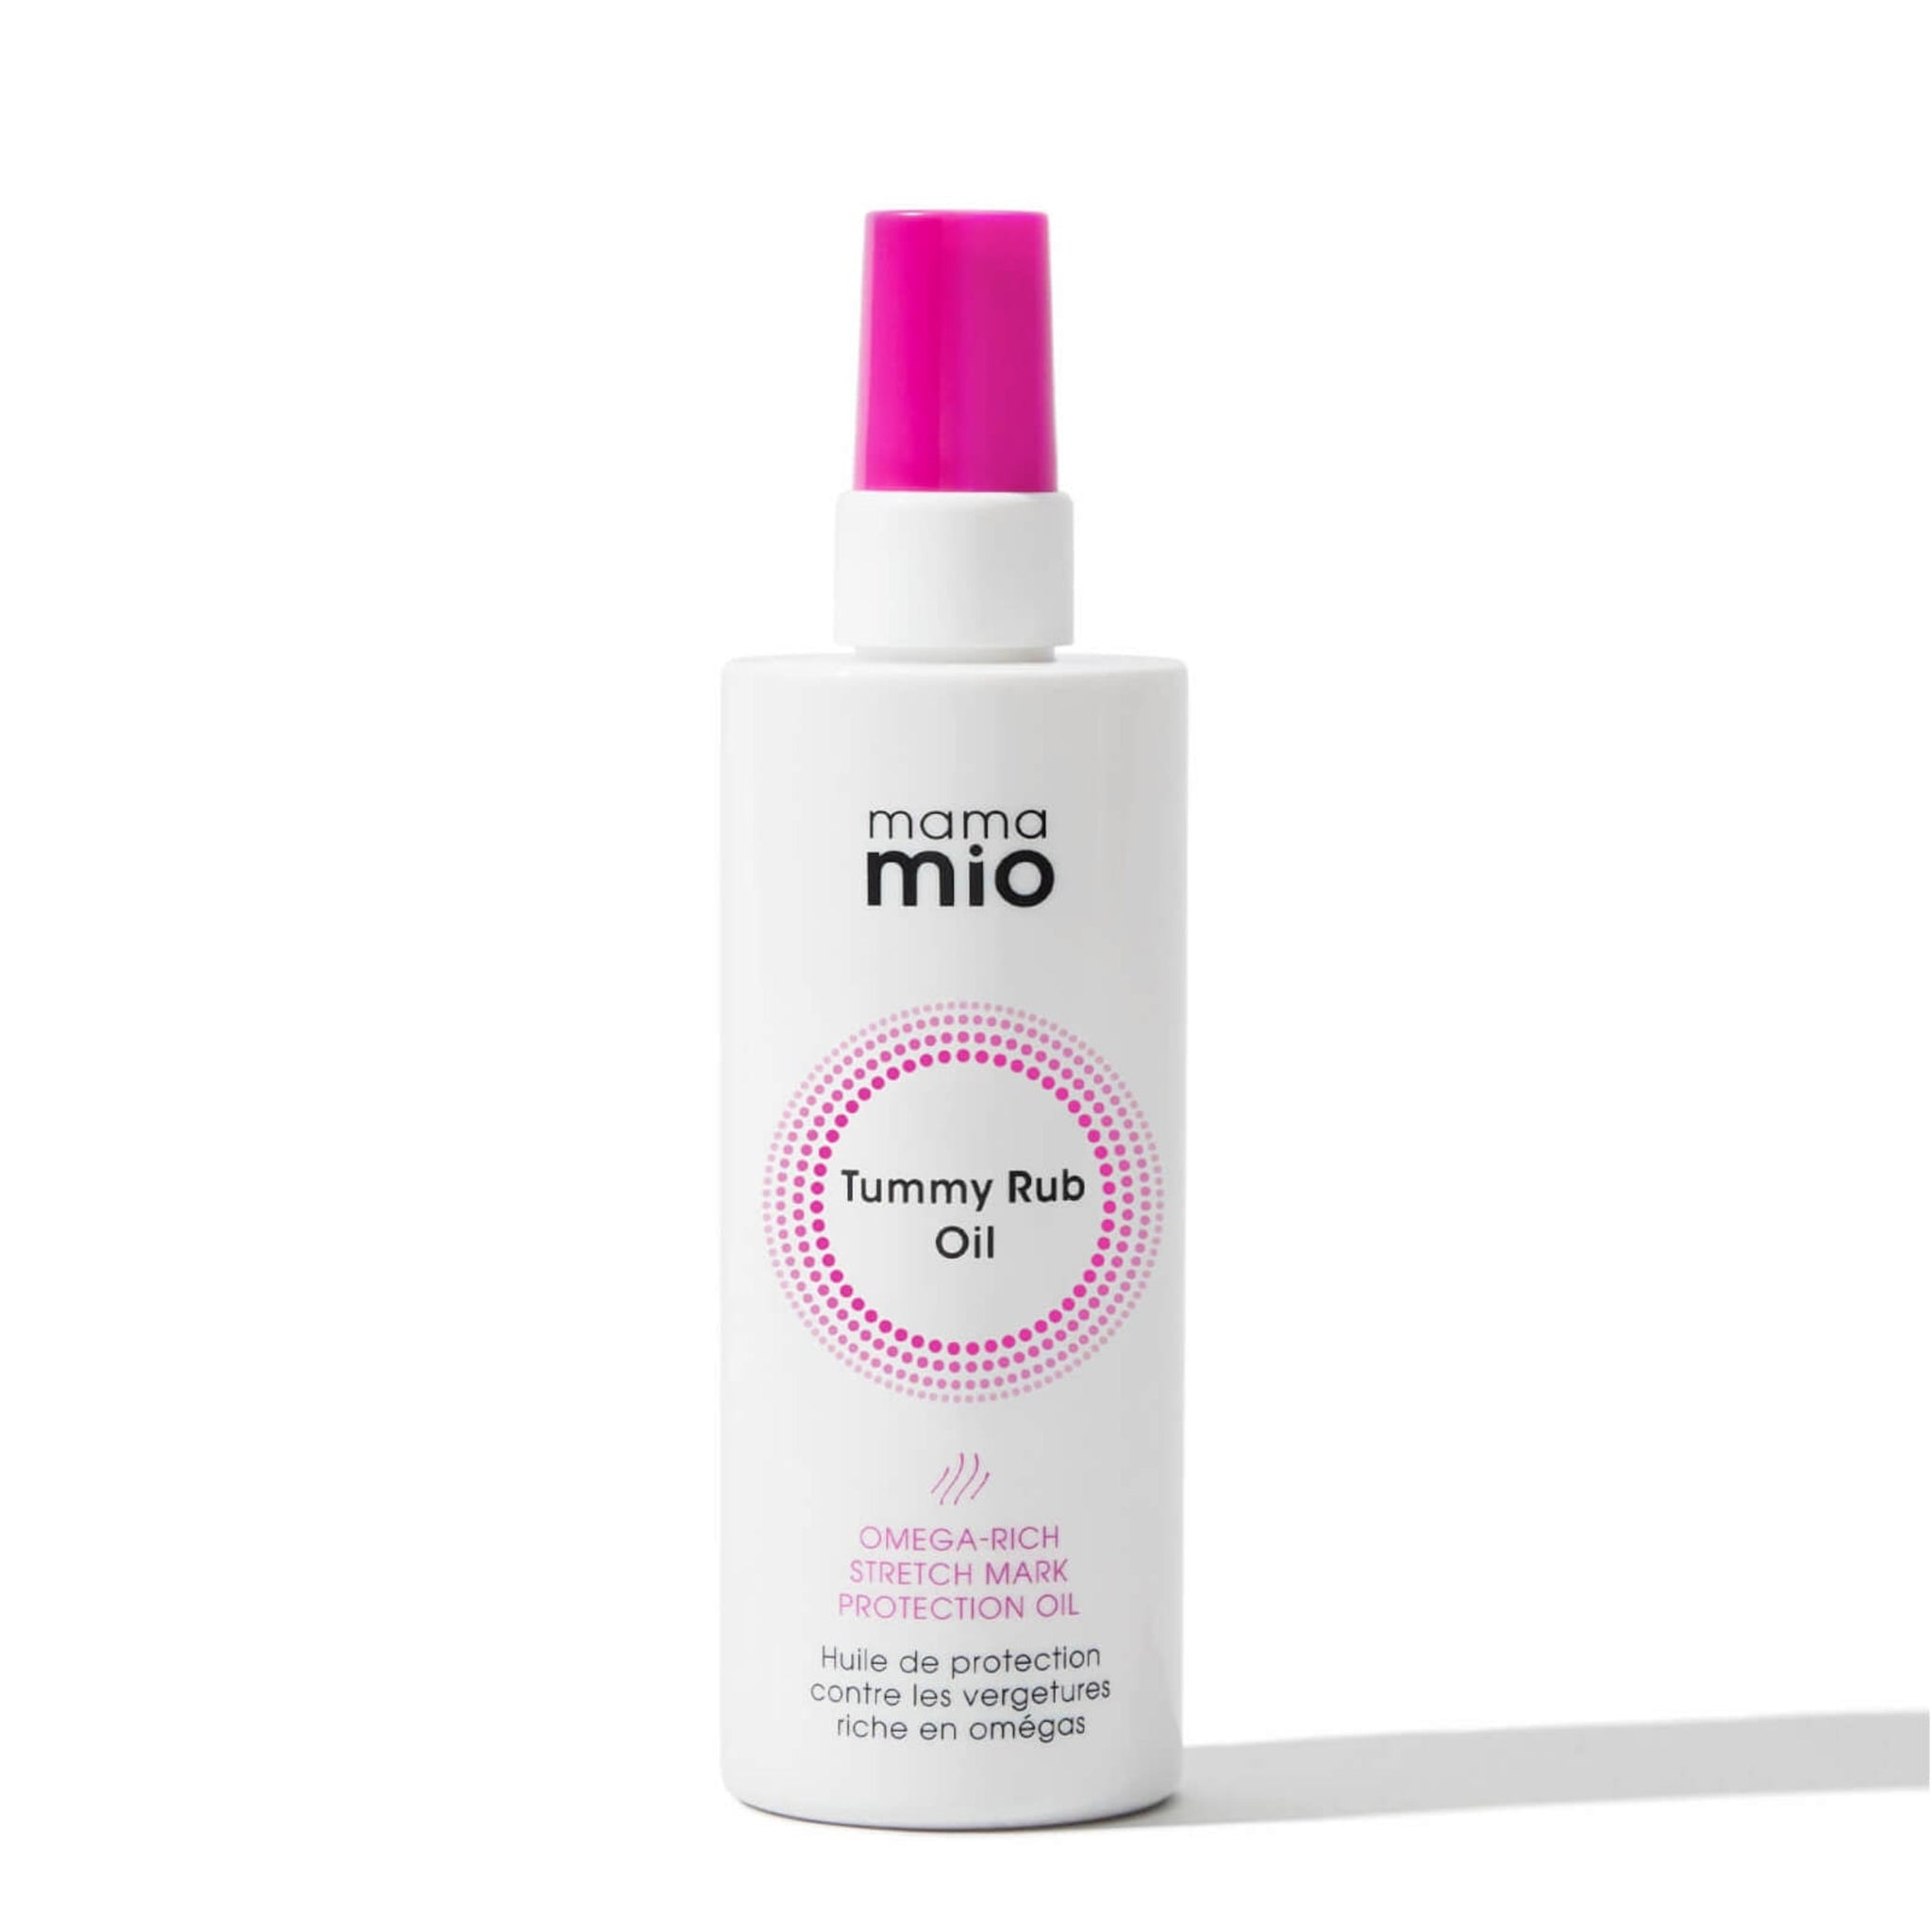 Aceite protector anti-estrías The Tummy Rub Oil™ de Mama Mio 120ml